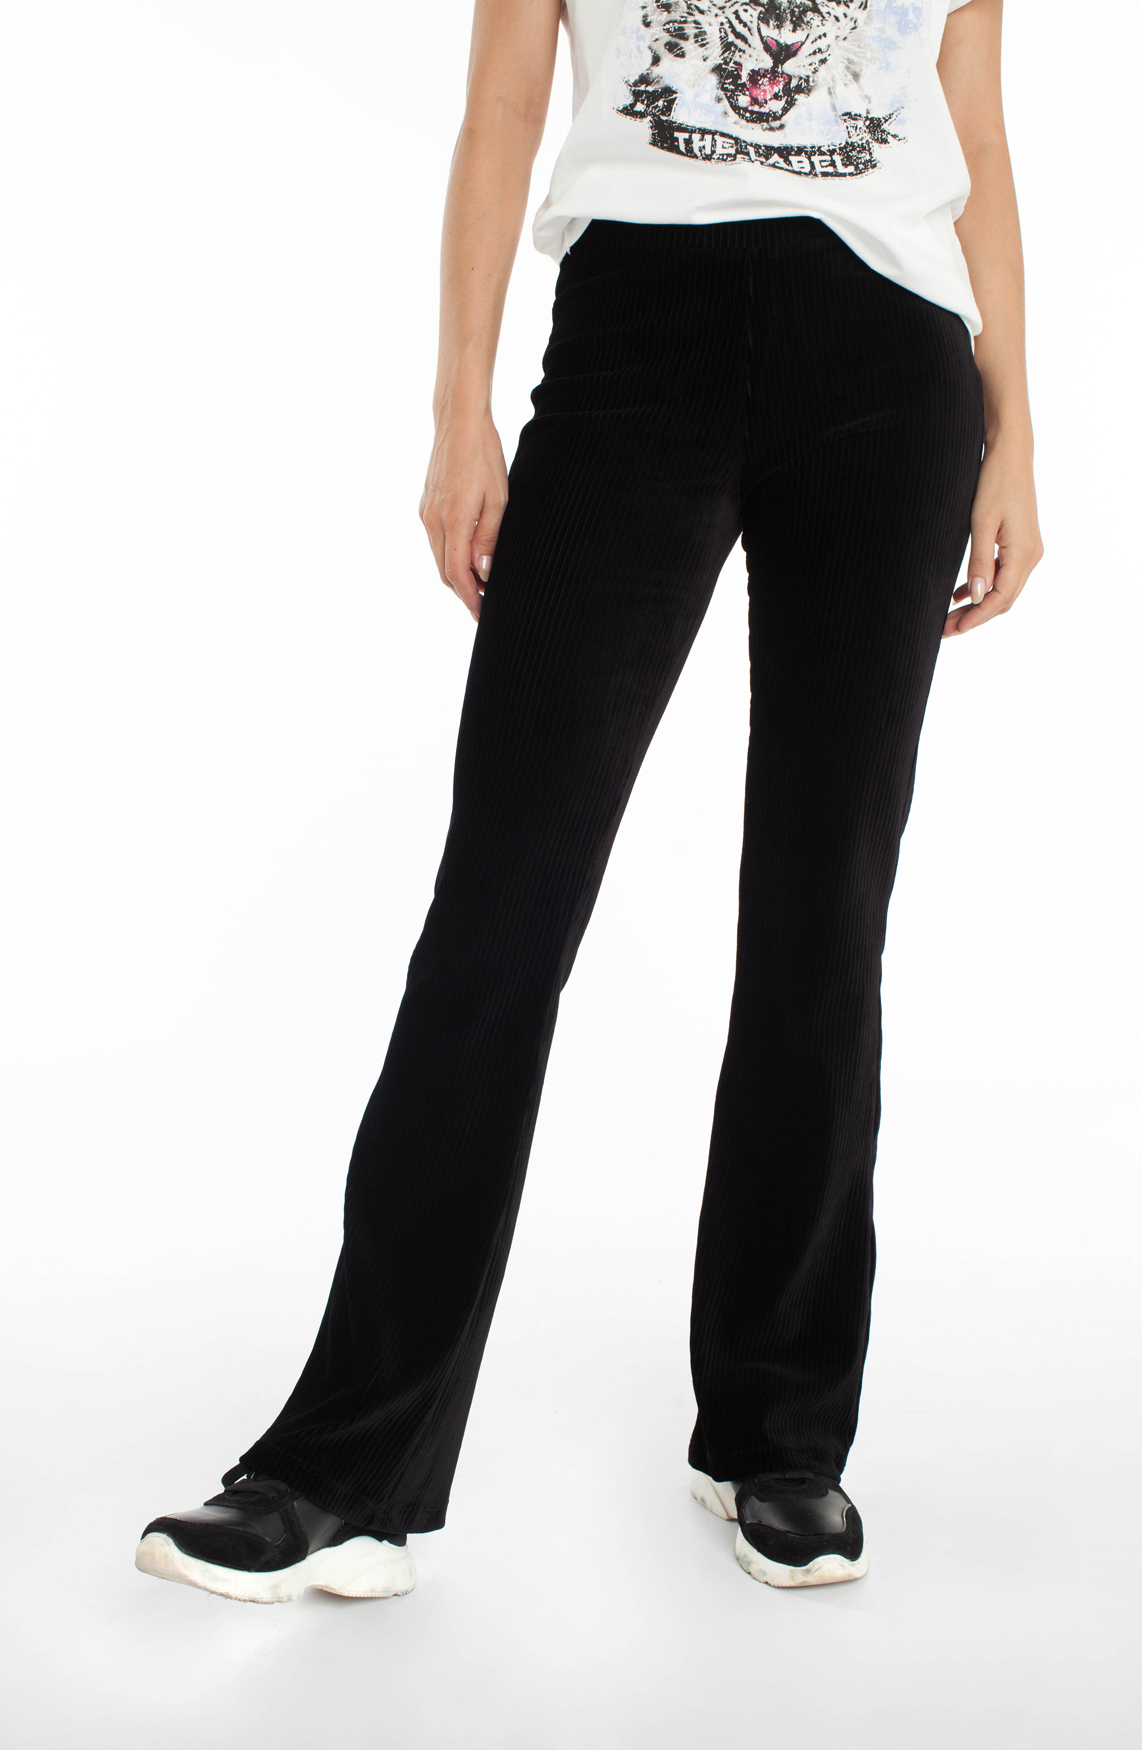 Alix The Label Dames Flared velvet broek zwart